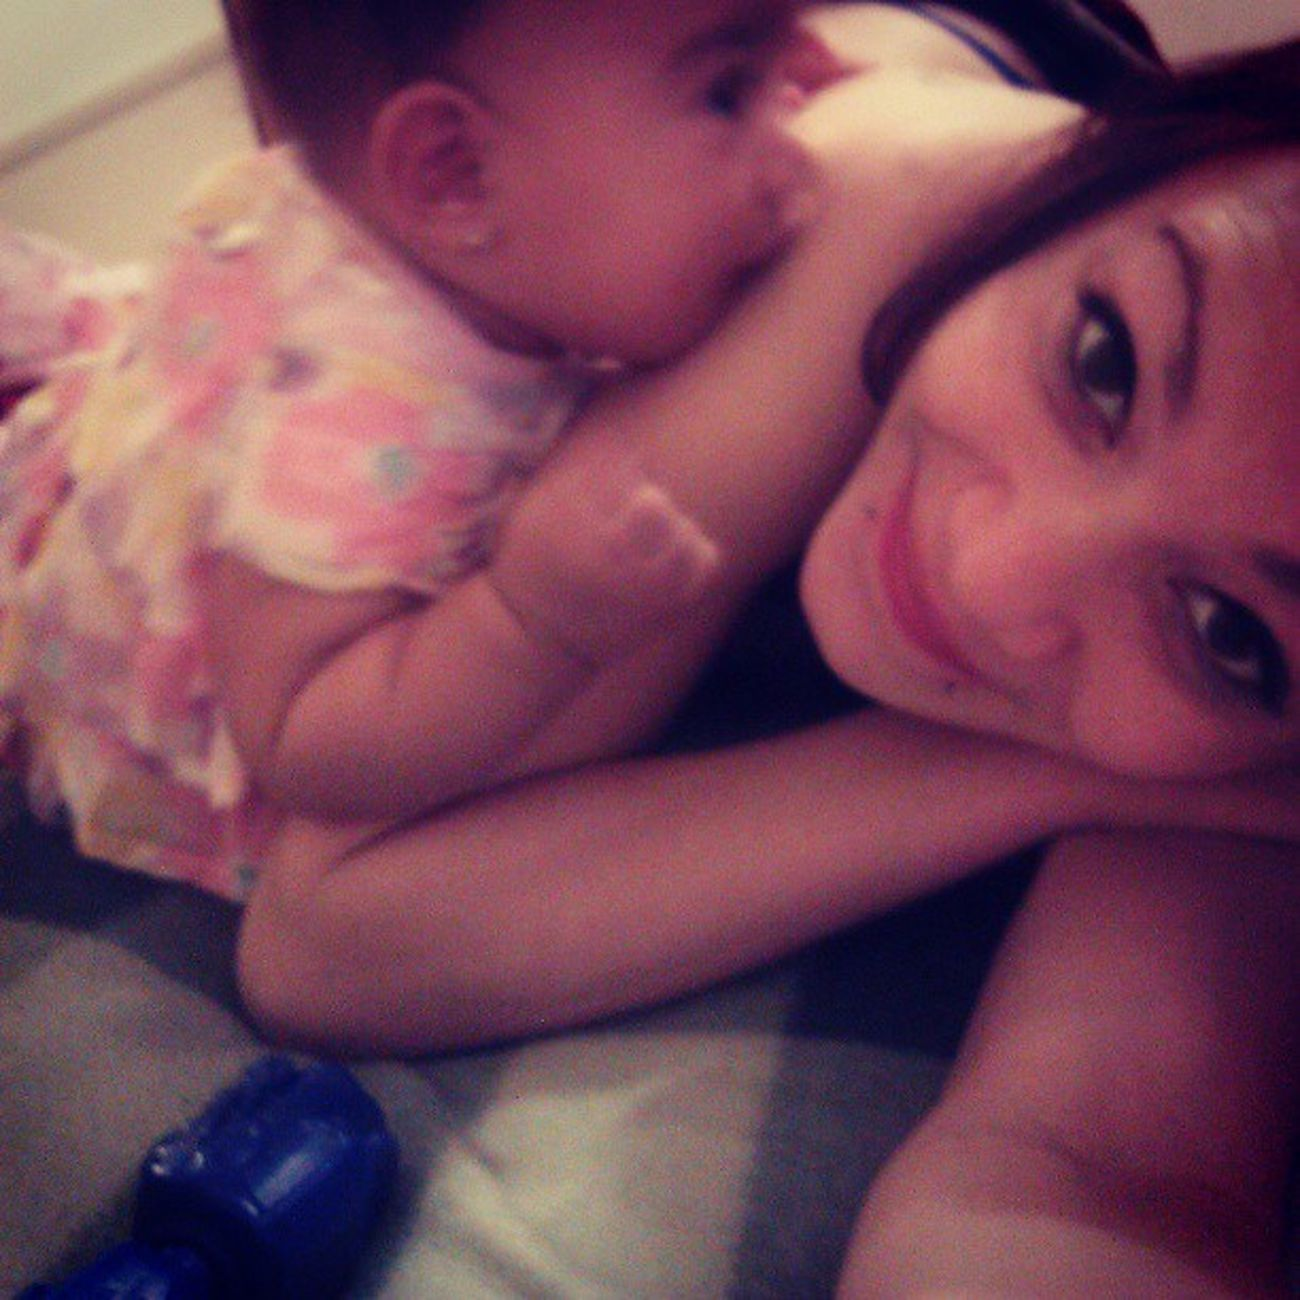 She stay biting mii when she watches tv lol JayLeah <3